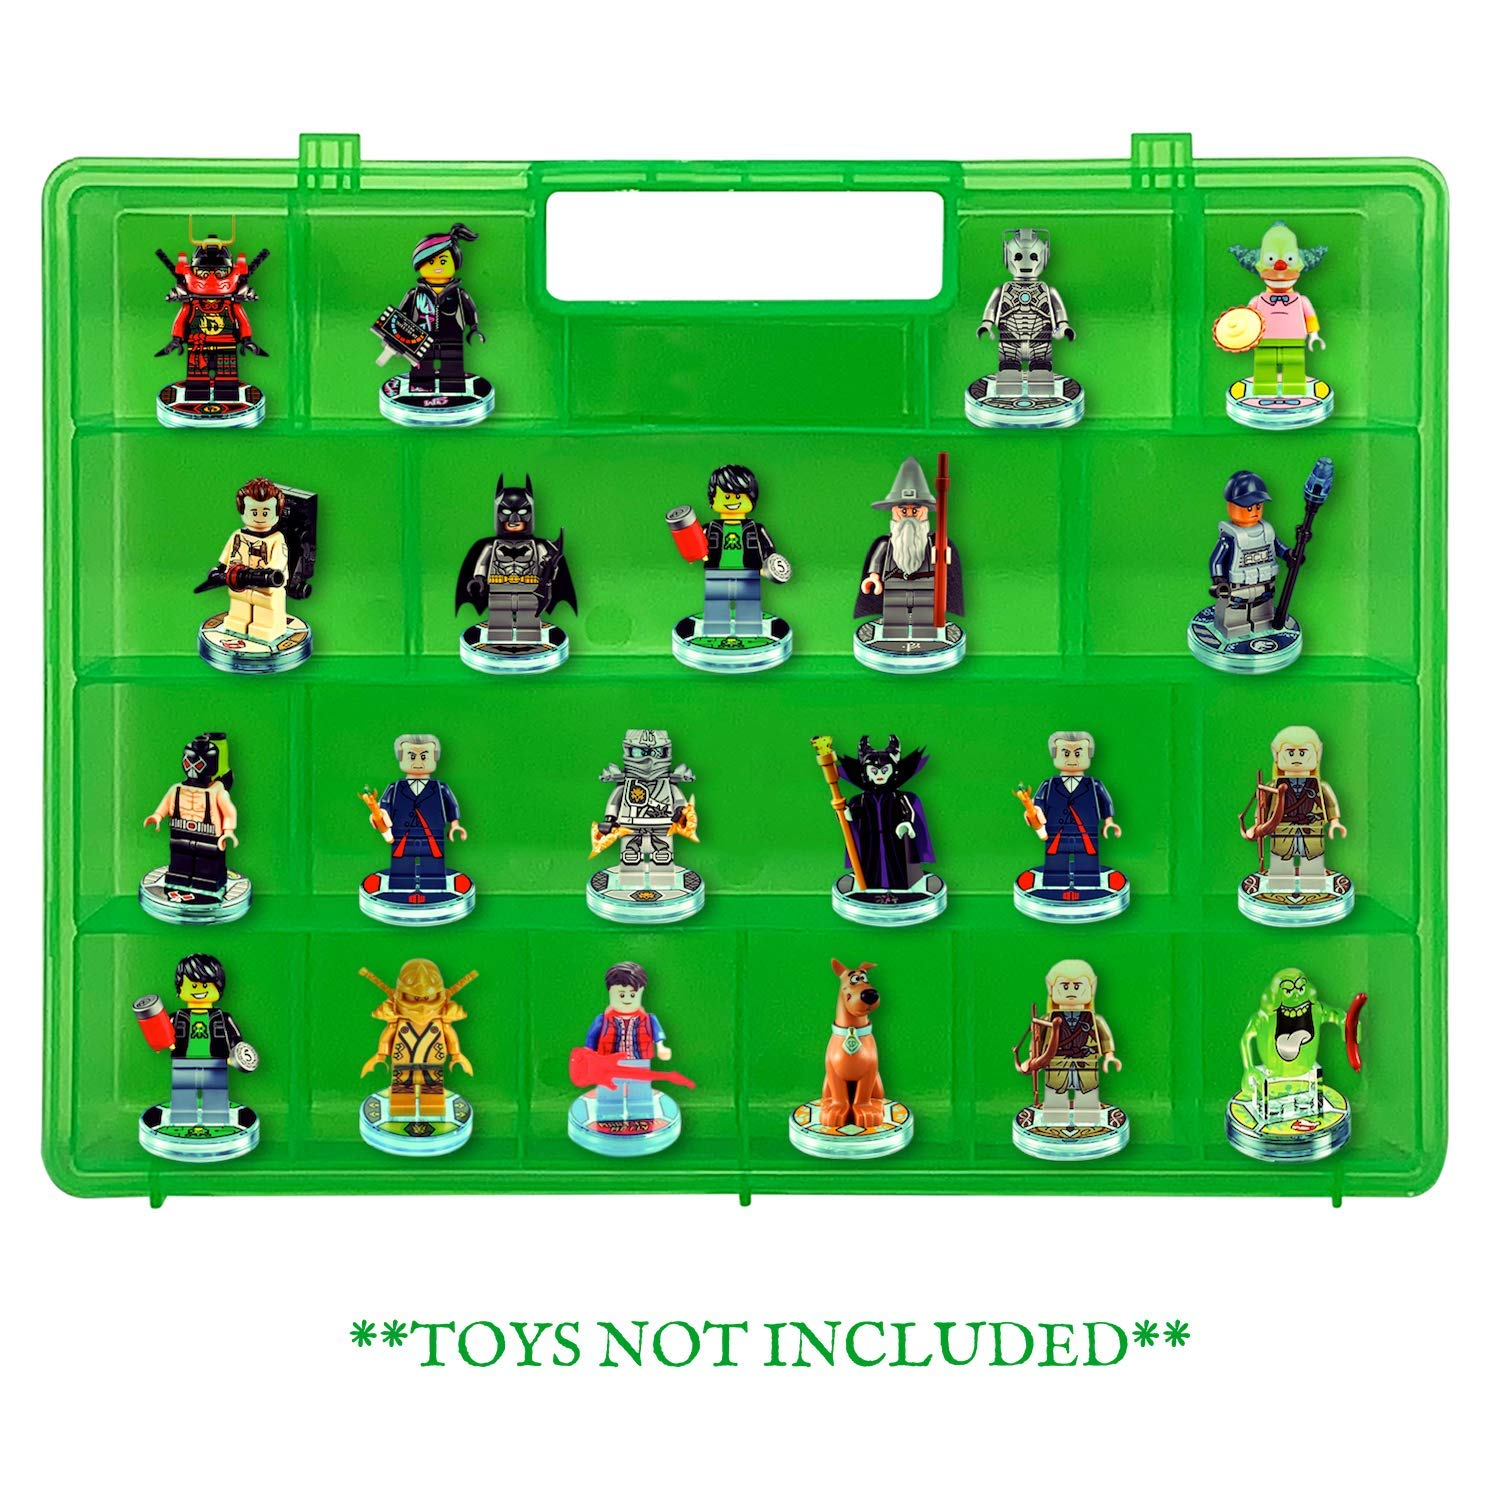 Compatible with Lego Dimensions Video Game Figures Life Made Better Model Toy Case not Made or Sold by Lego Green Sturdy Protective Organization Storage Case